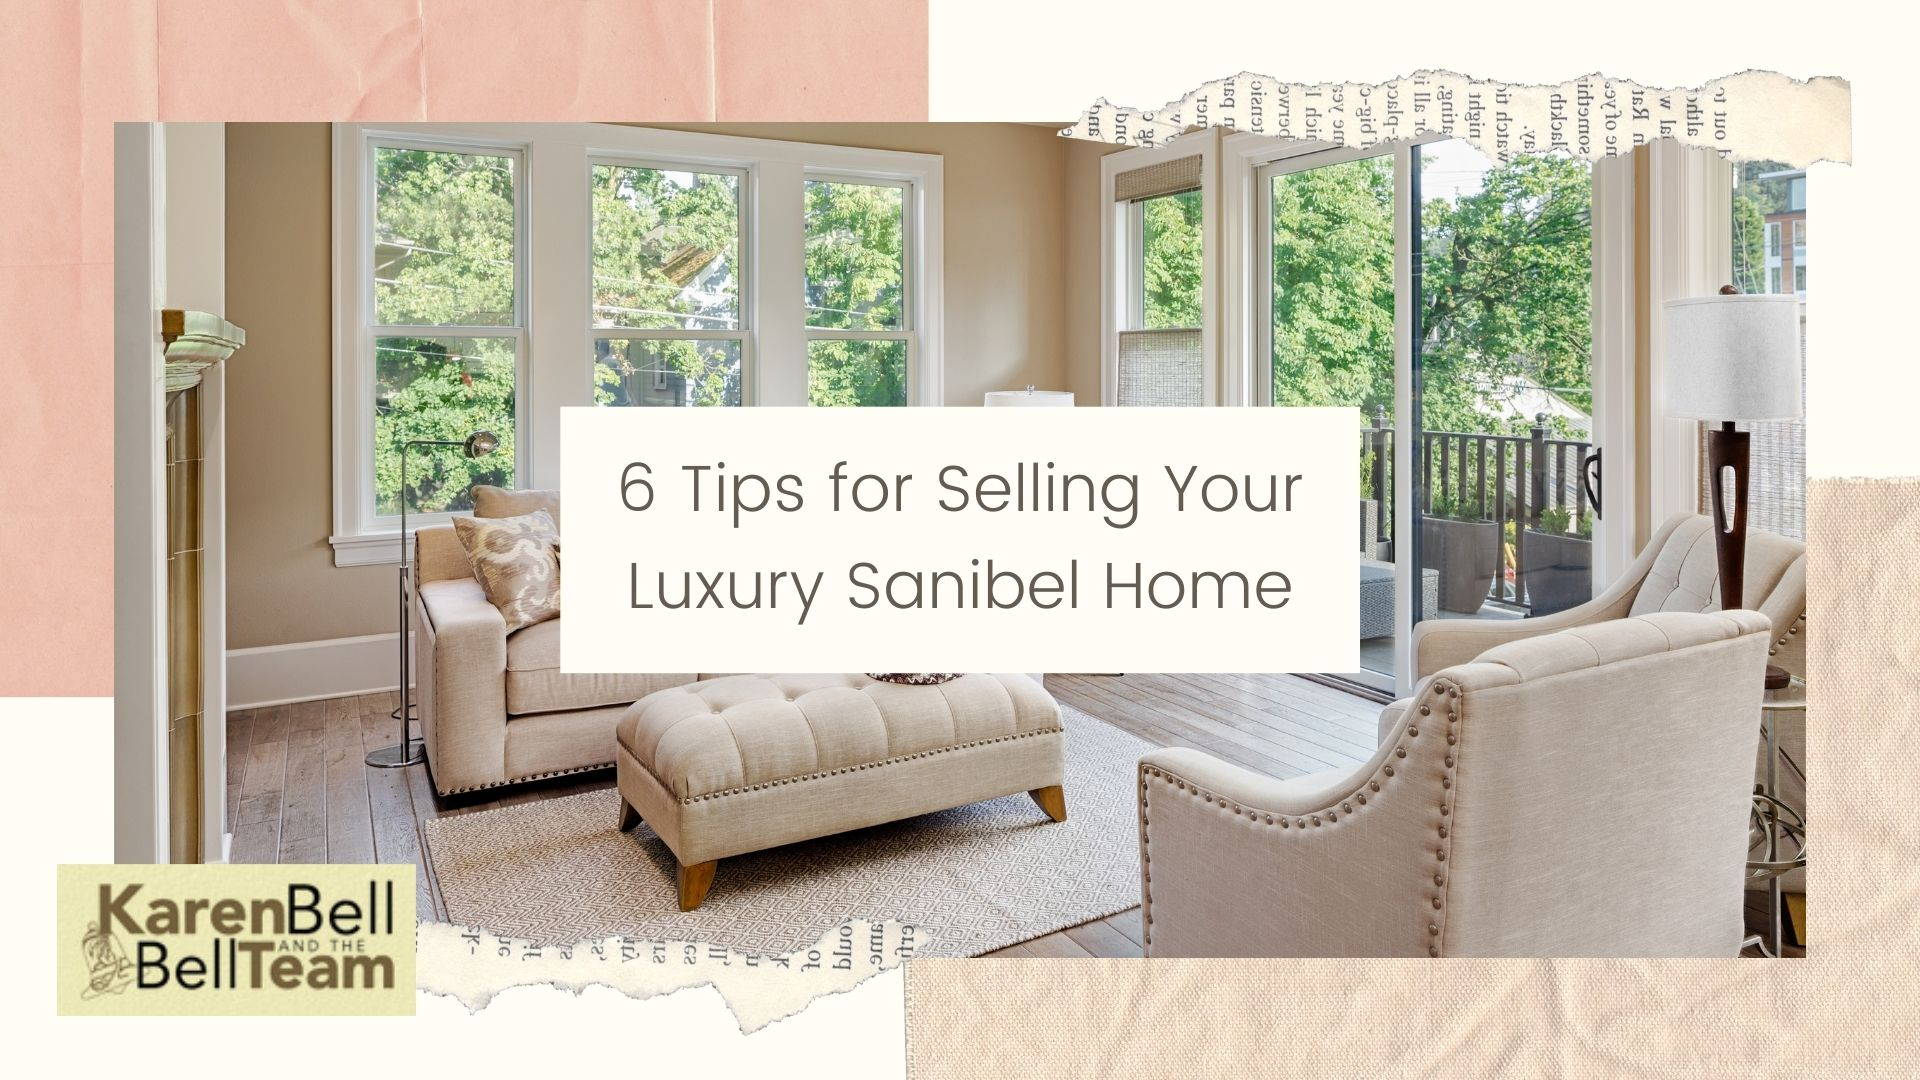 6 Tips for Selling Your Luxury Sanibel Home